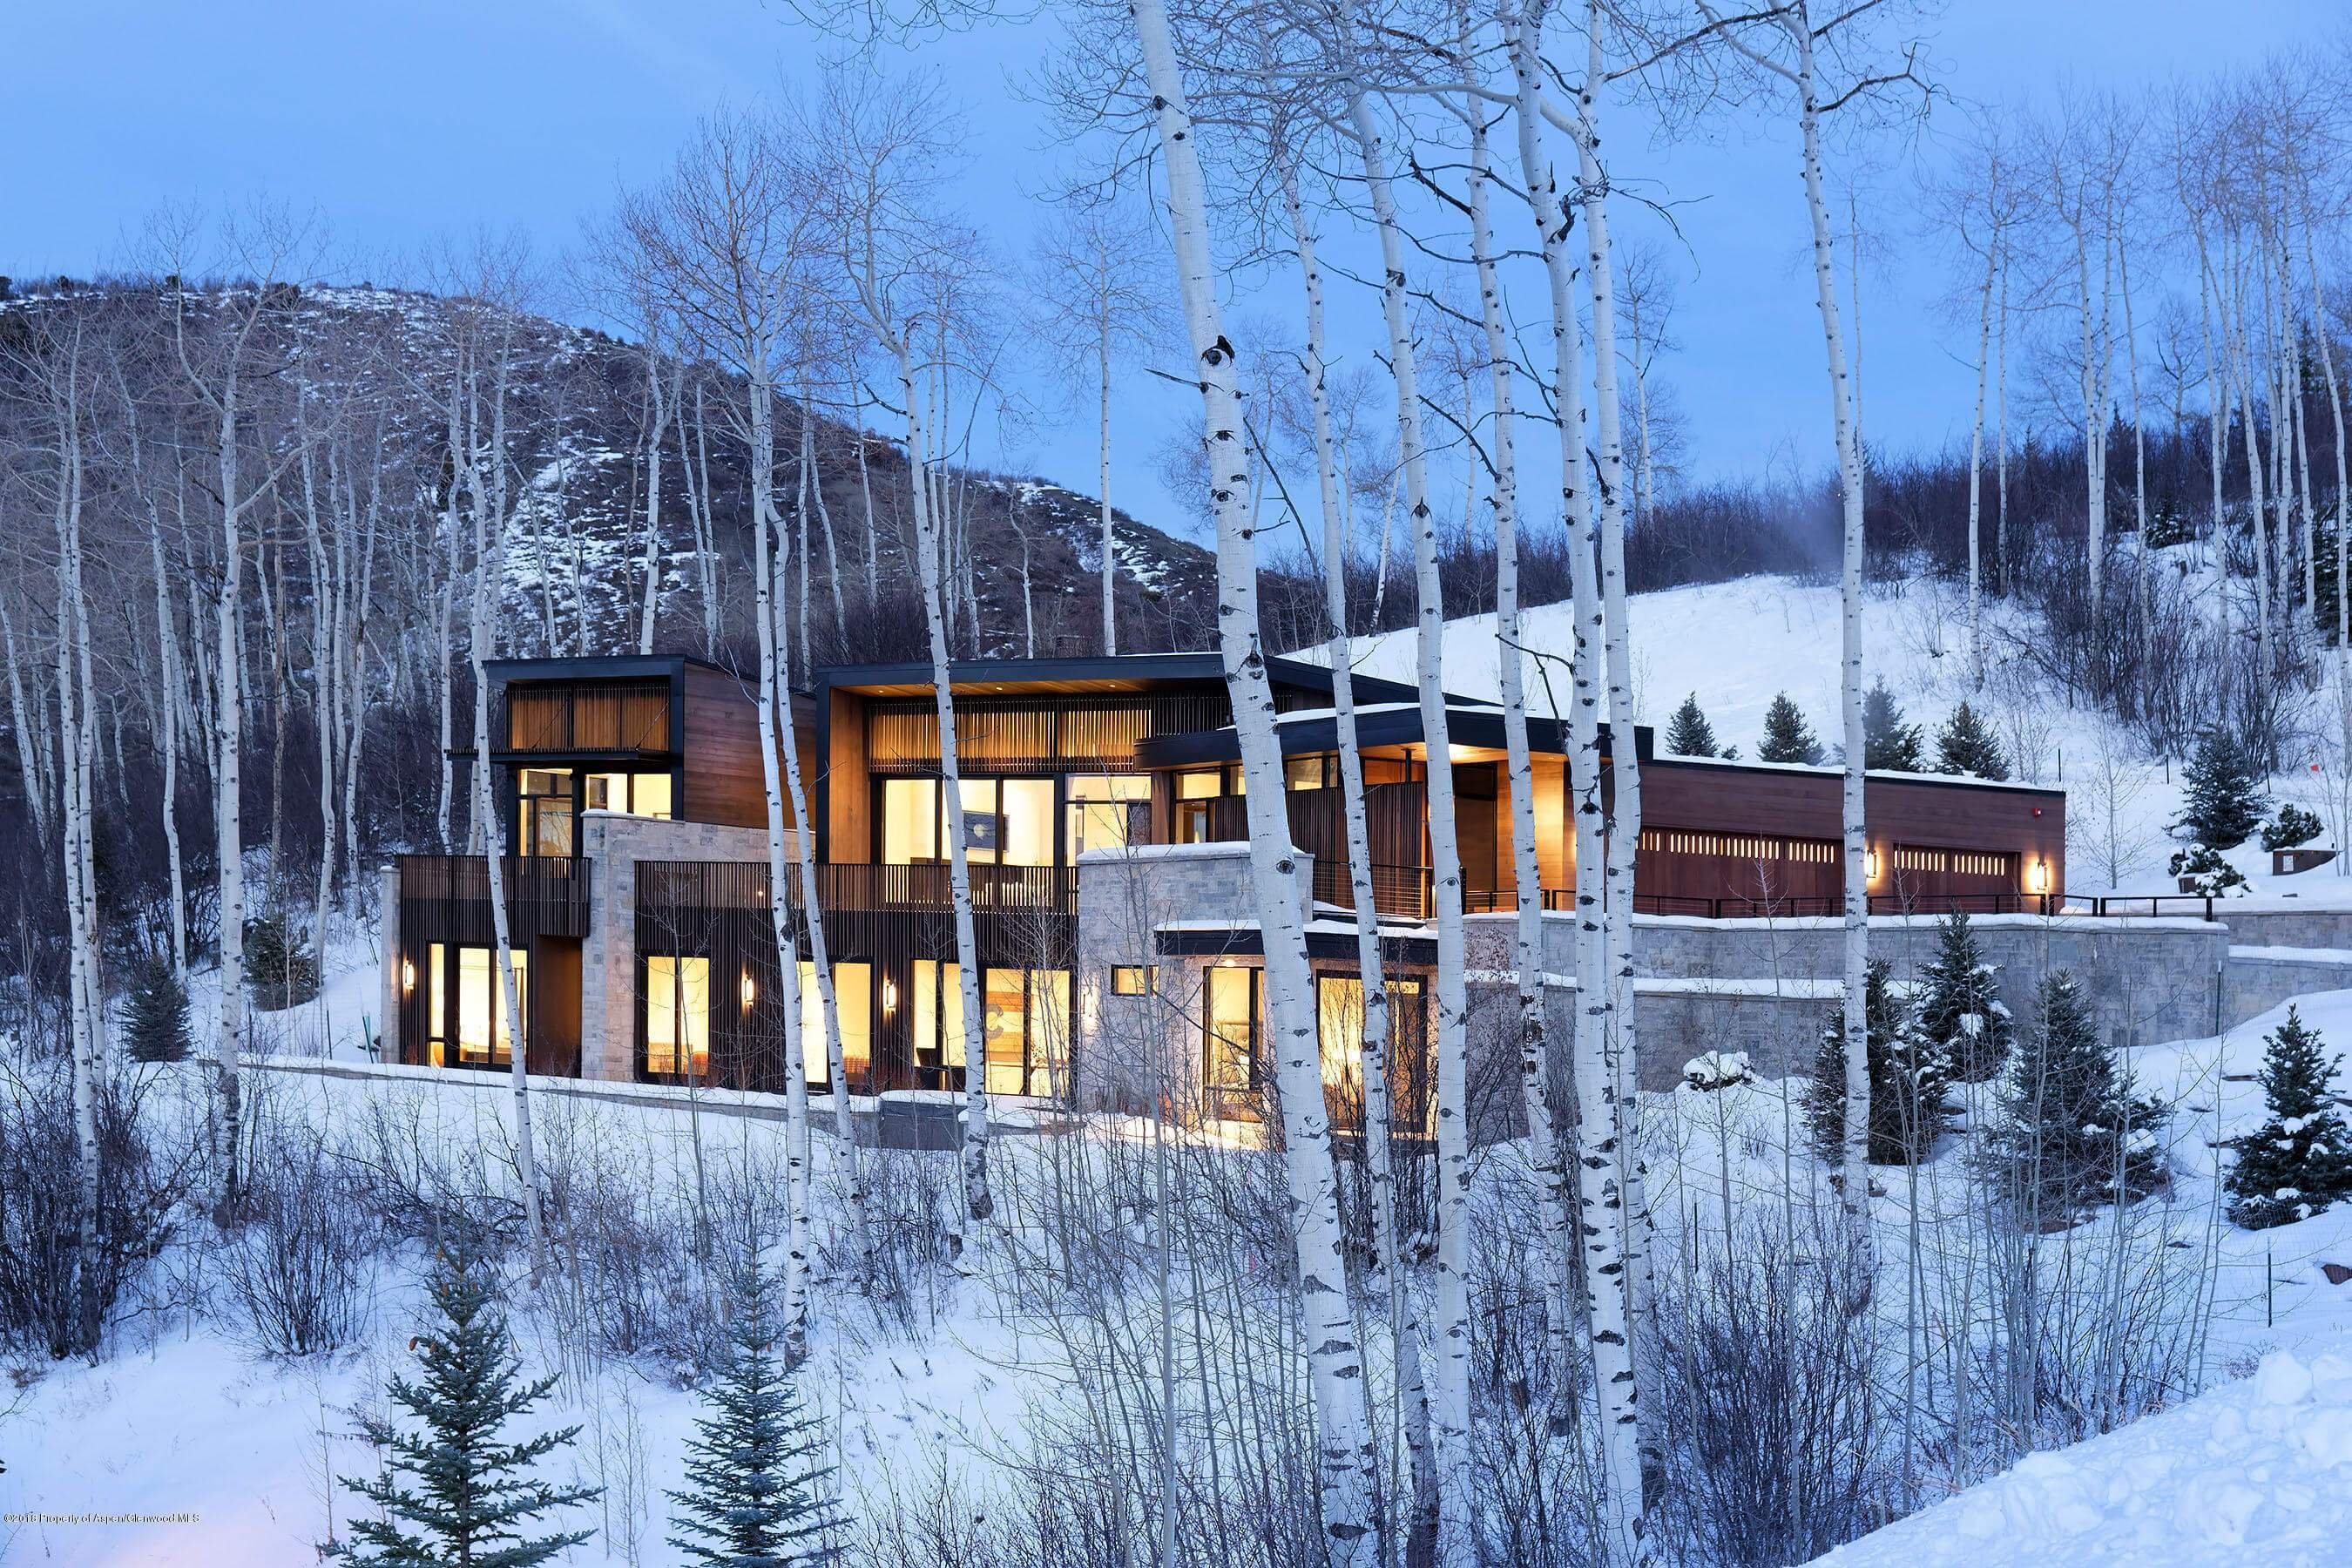 2018 Built Contemp Ski in/Out Snowmass Home at 270 Spruce Ridge Closes at $8.25M/$1,308 SF Furn Image